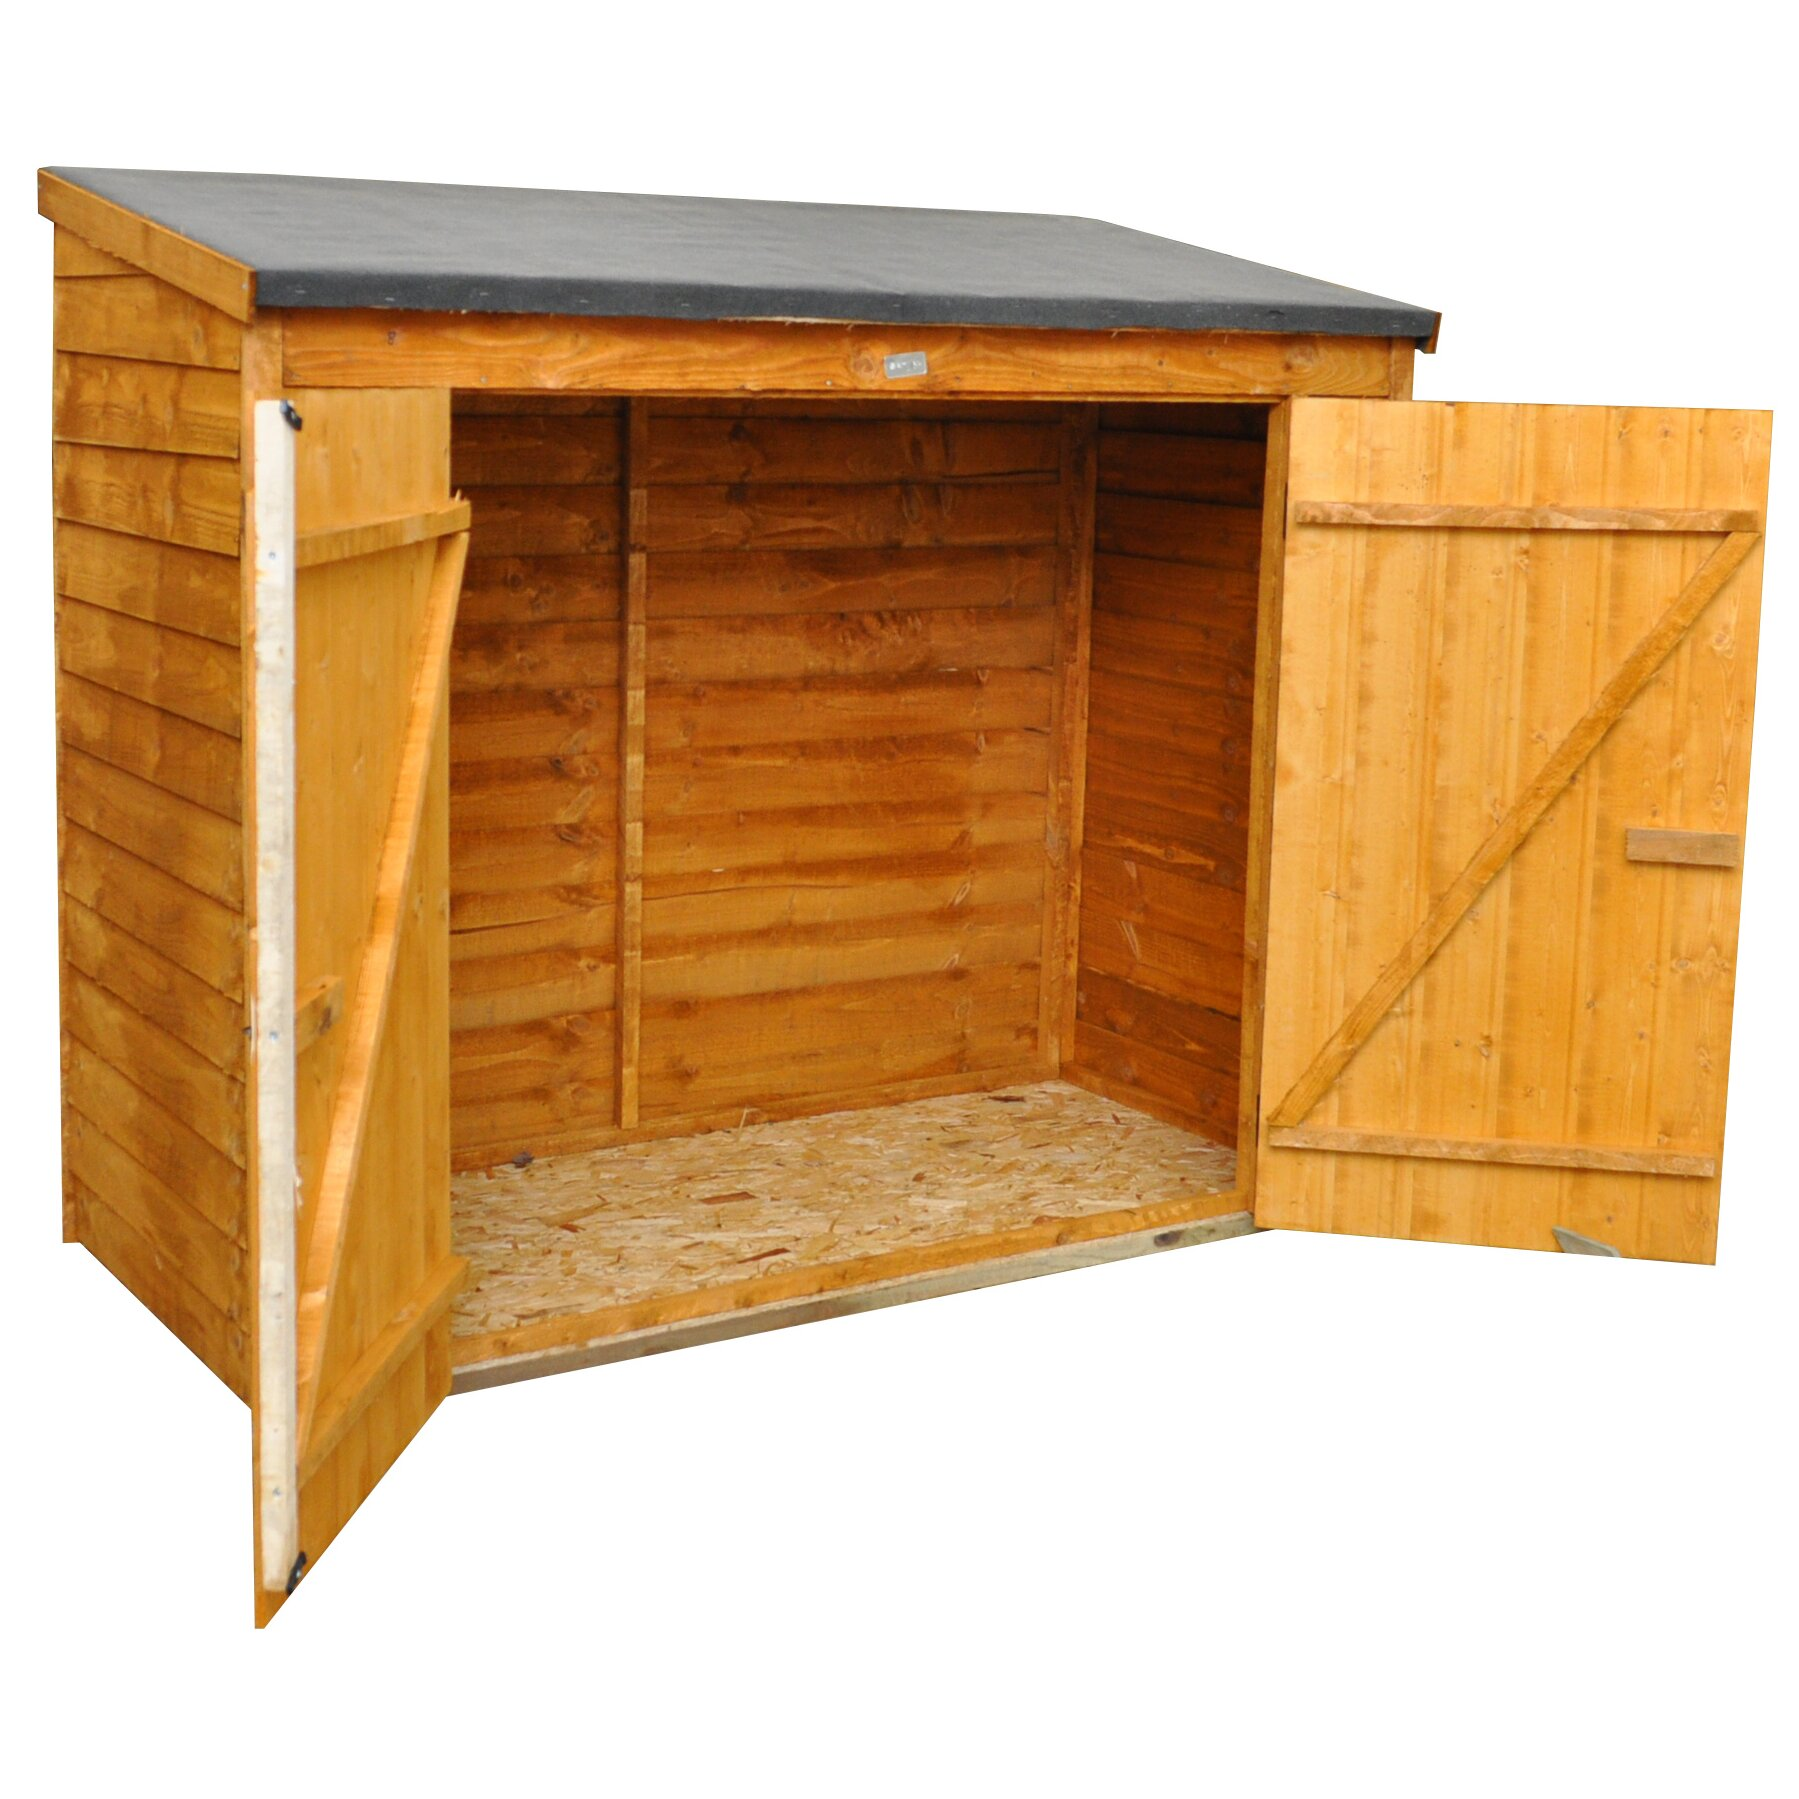 Forest Garden 6ft X 3ft Wooden Tool Shed & Reviews